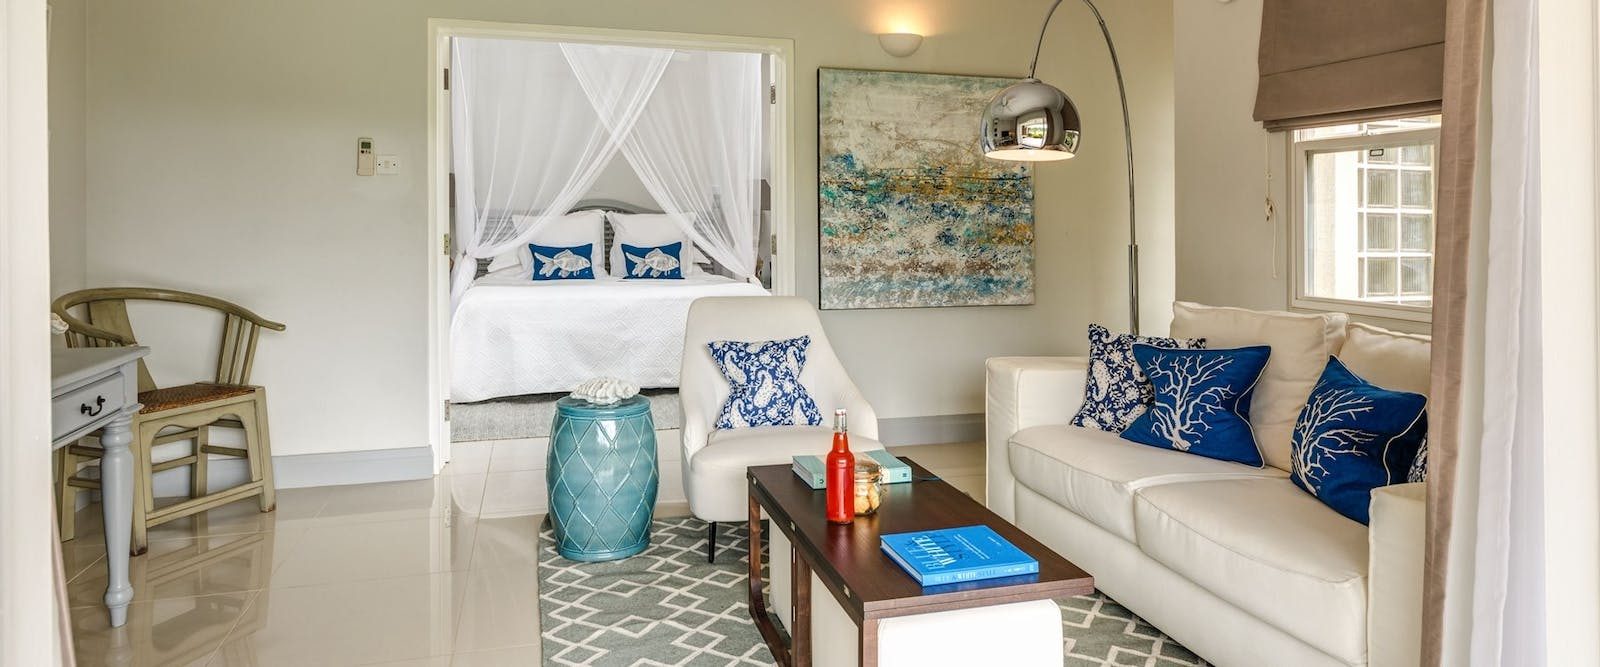 Living room area in Deluxe Suite at Calabash Luxury Boutique Hotel & Spa, Grenada